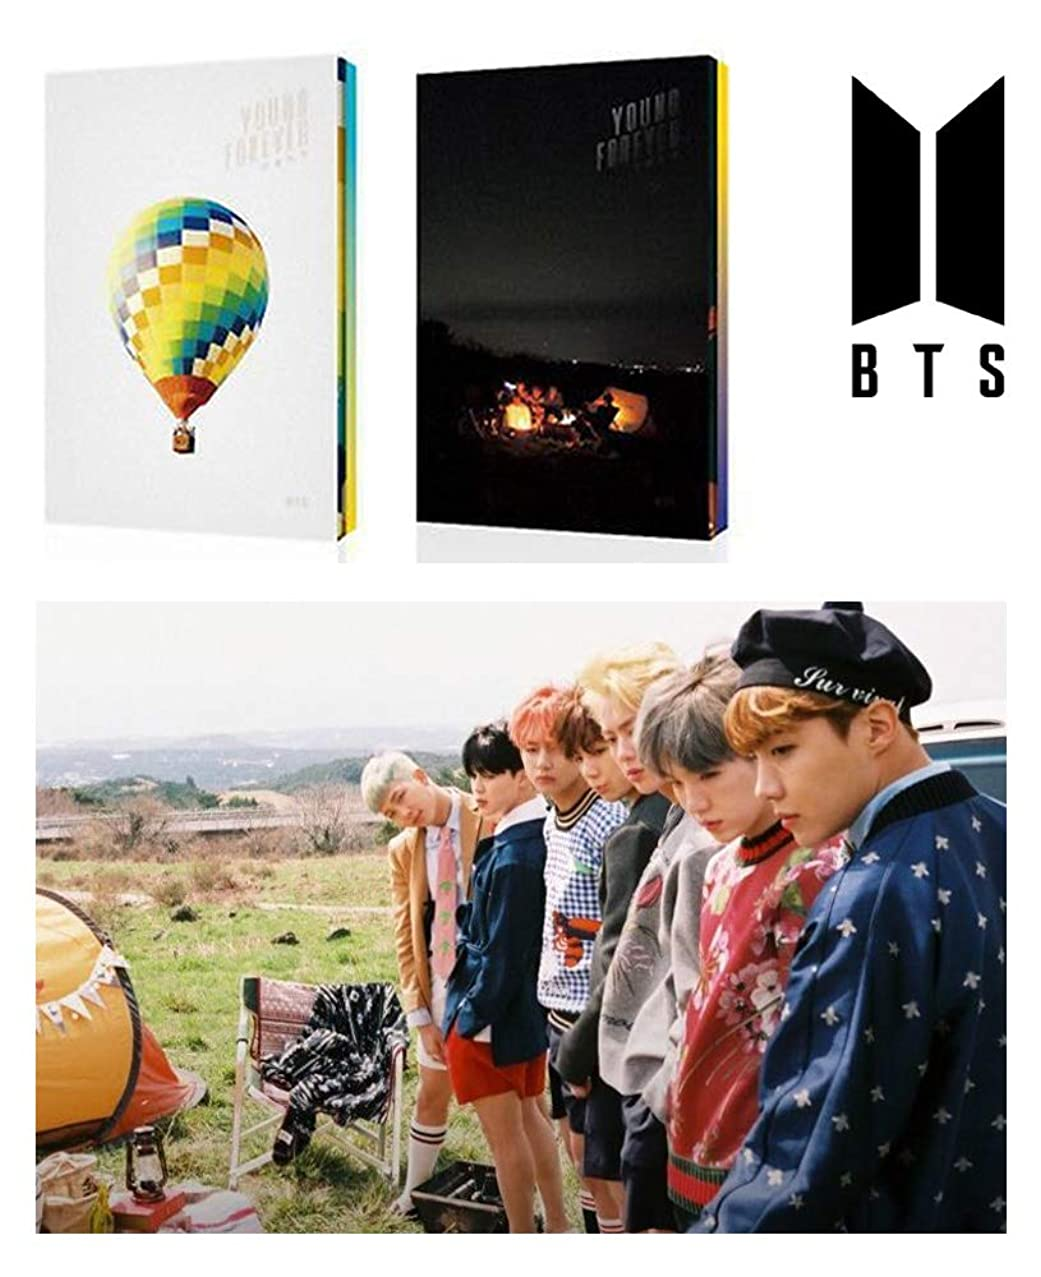 BTS YOUNG FOREVER [Day+Night Set ver.] In The Mood For Love Special Album SET BANGTAN BOYS 4CD + 2Posters + 2Photo Books + 2Polaroid Cards + Extra Gift